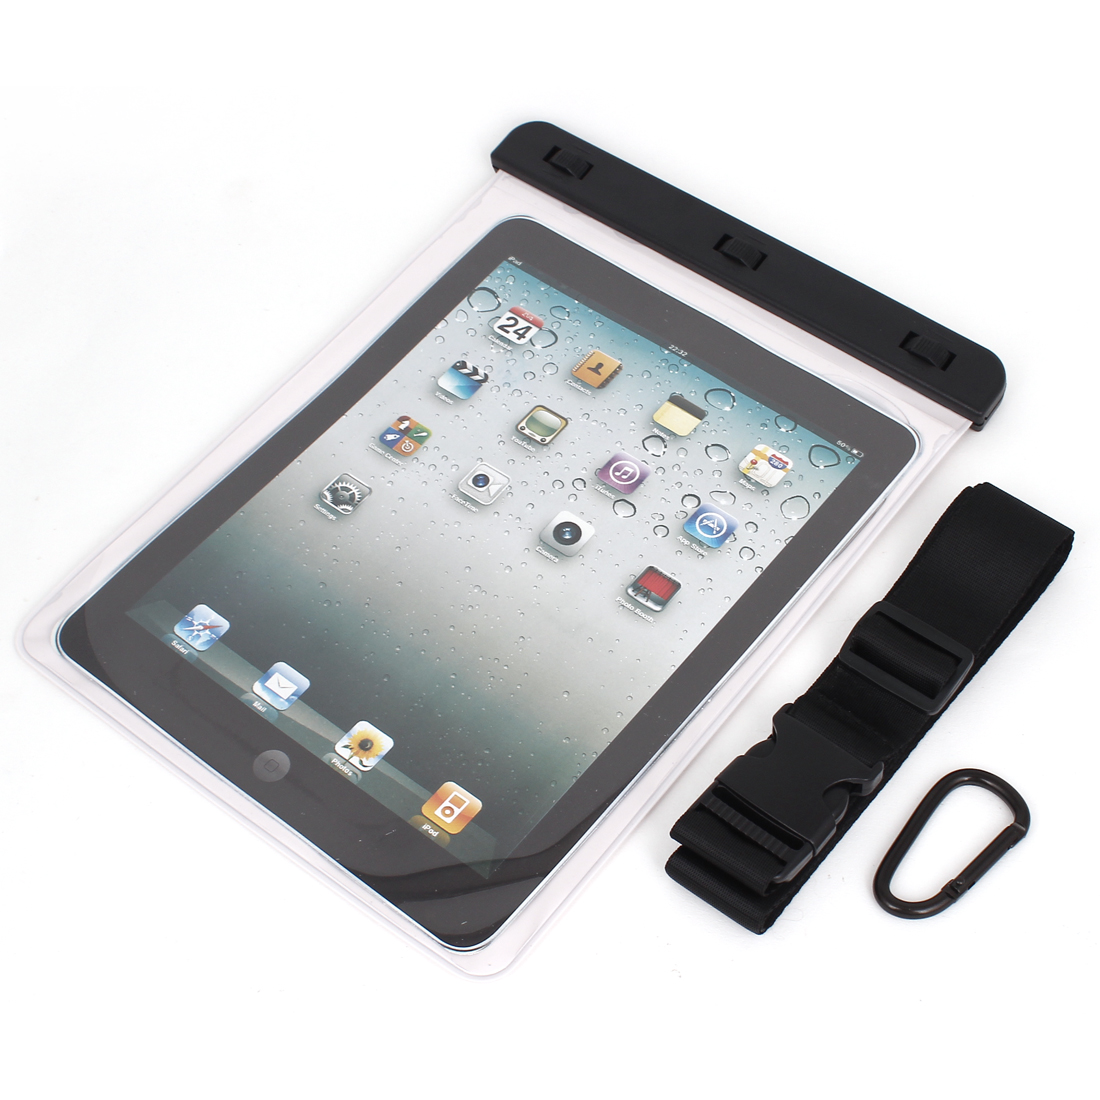 Waterproof Pouch Dry Bag Case White for iPad Air 2 w Hook Strap